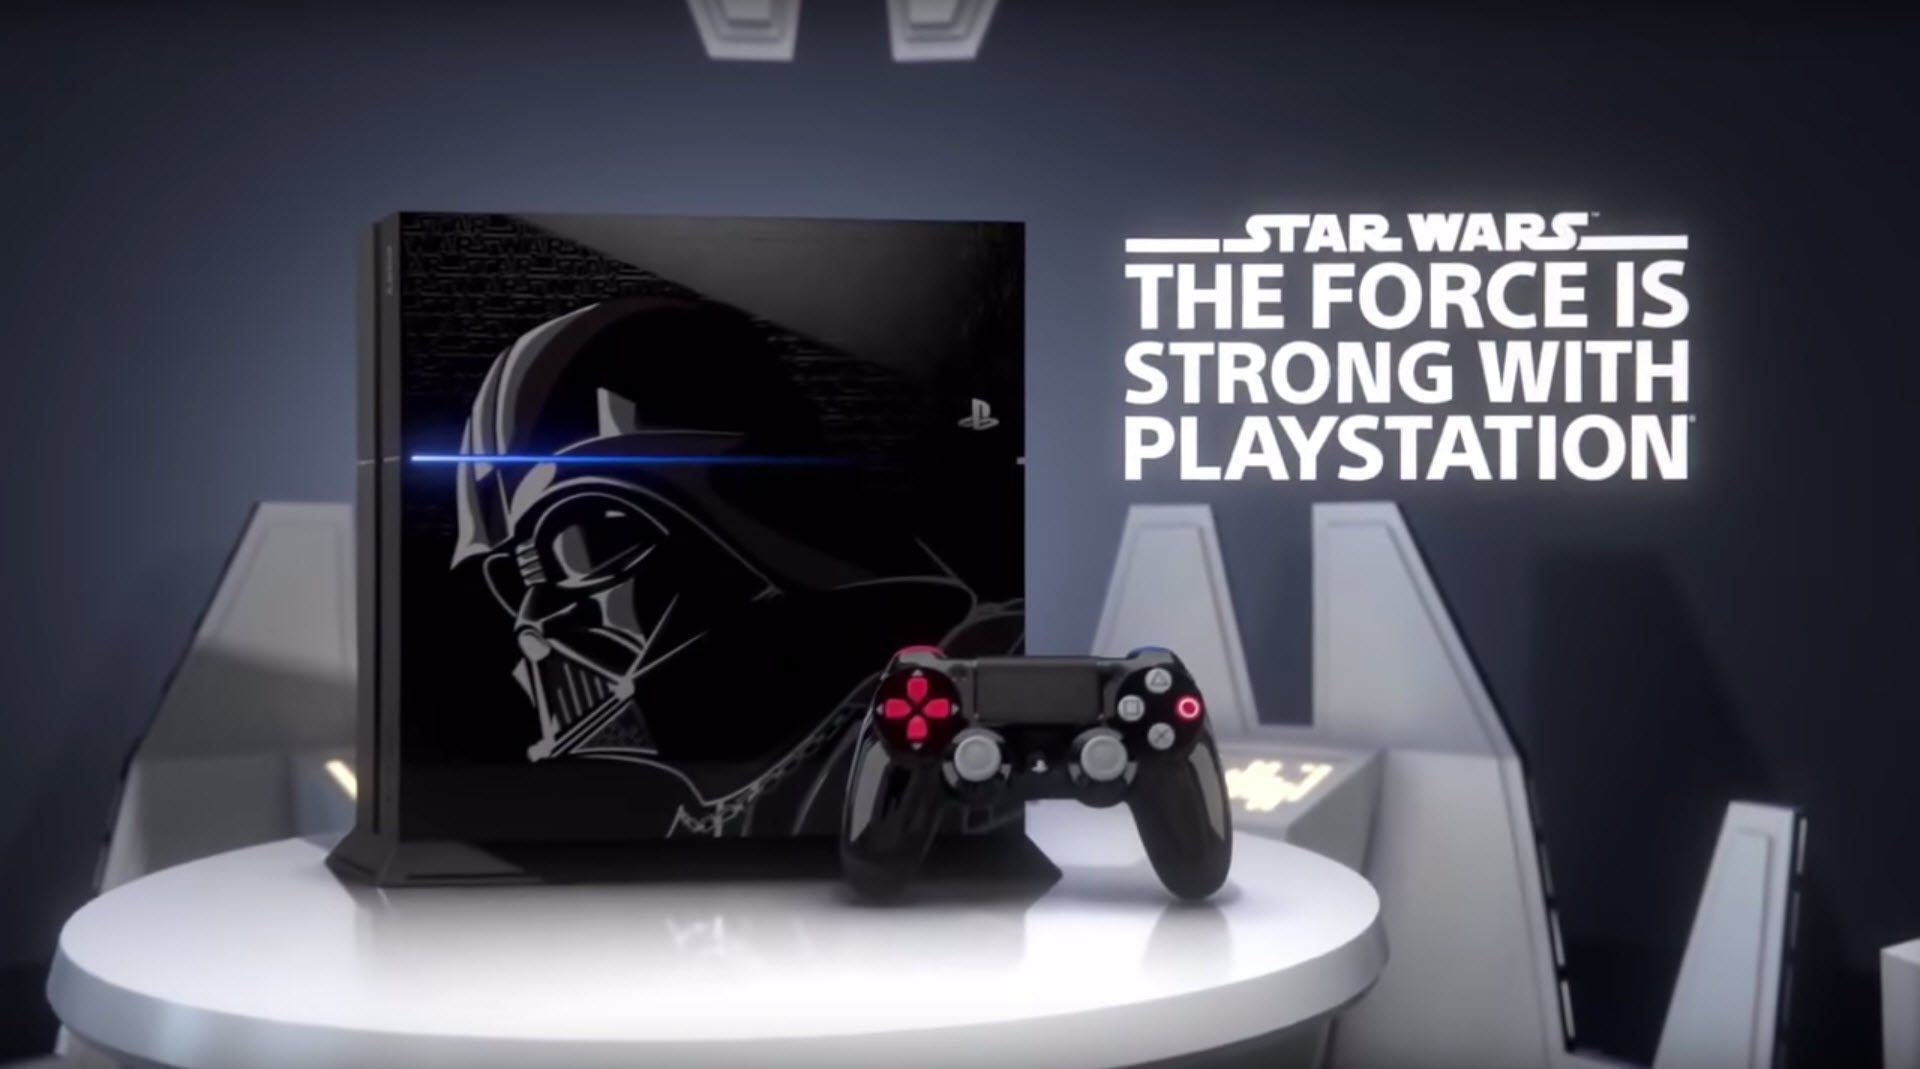 Star Wars Battlefront is extremely popular on the PS4